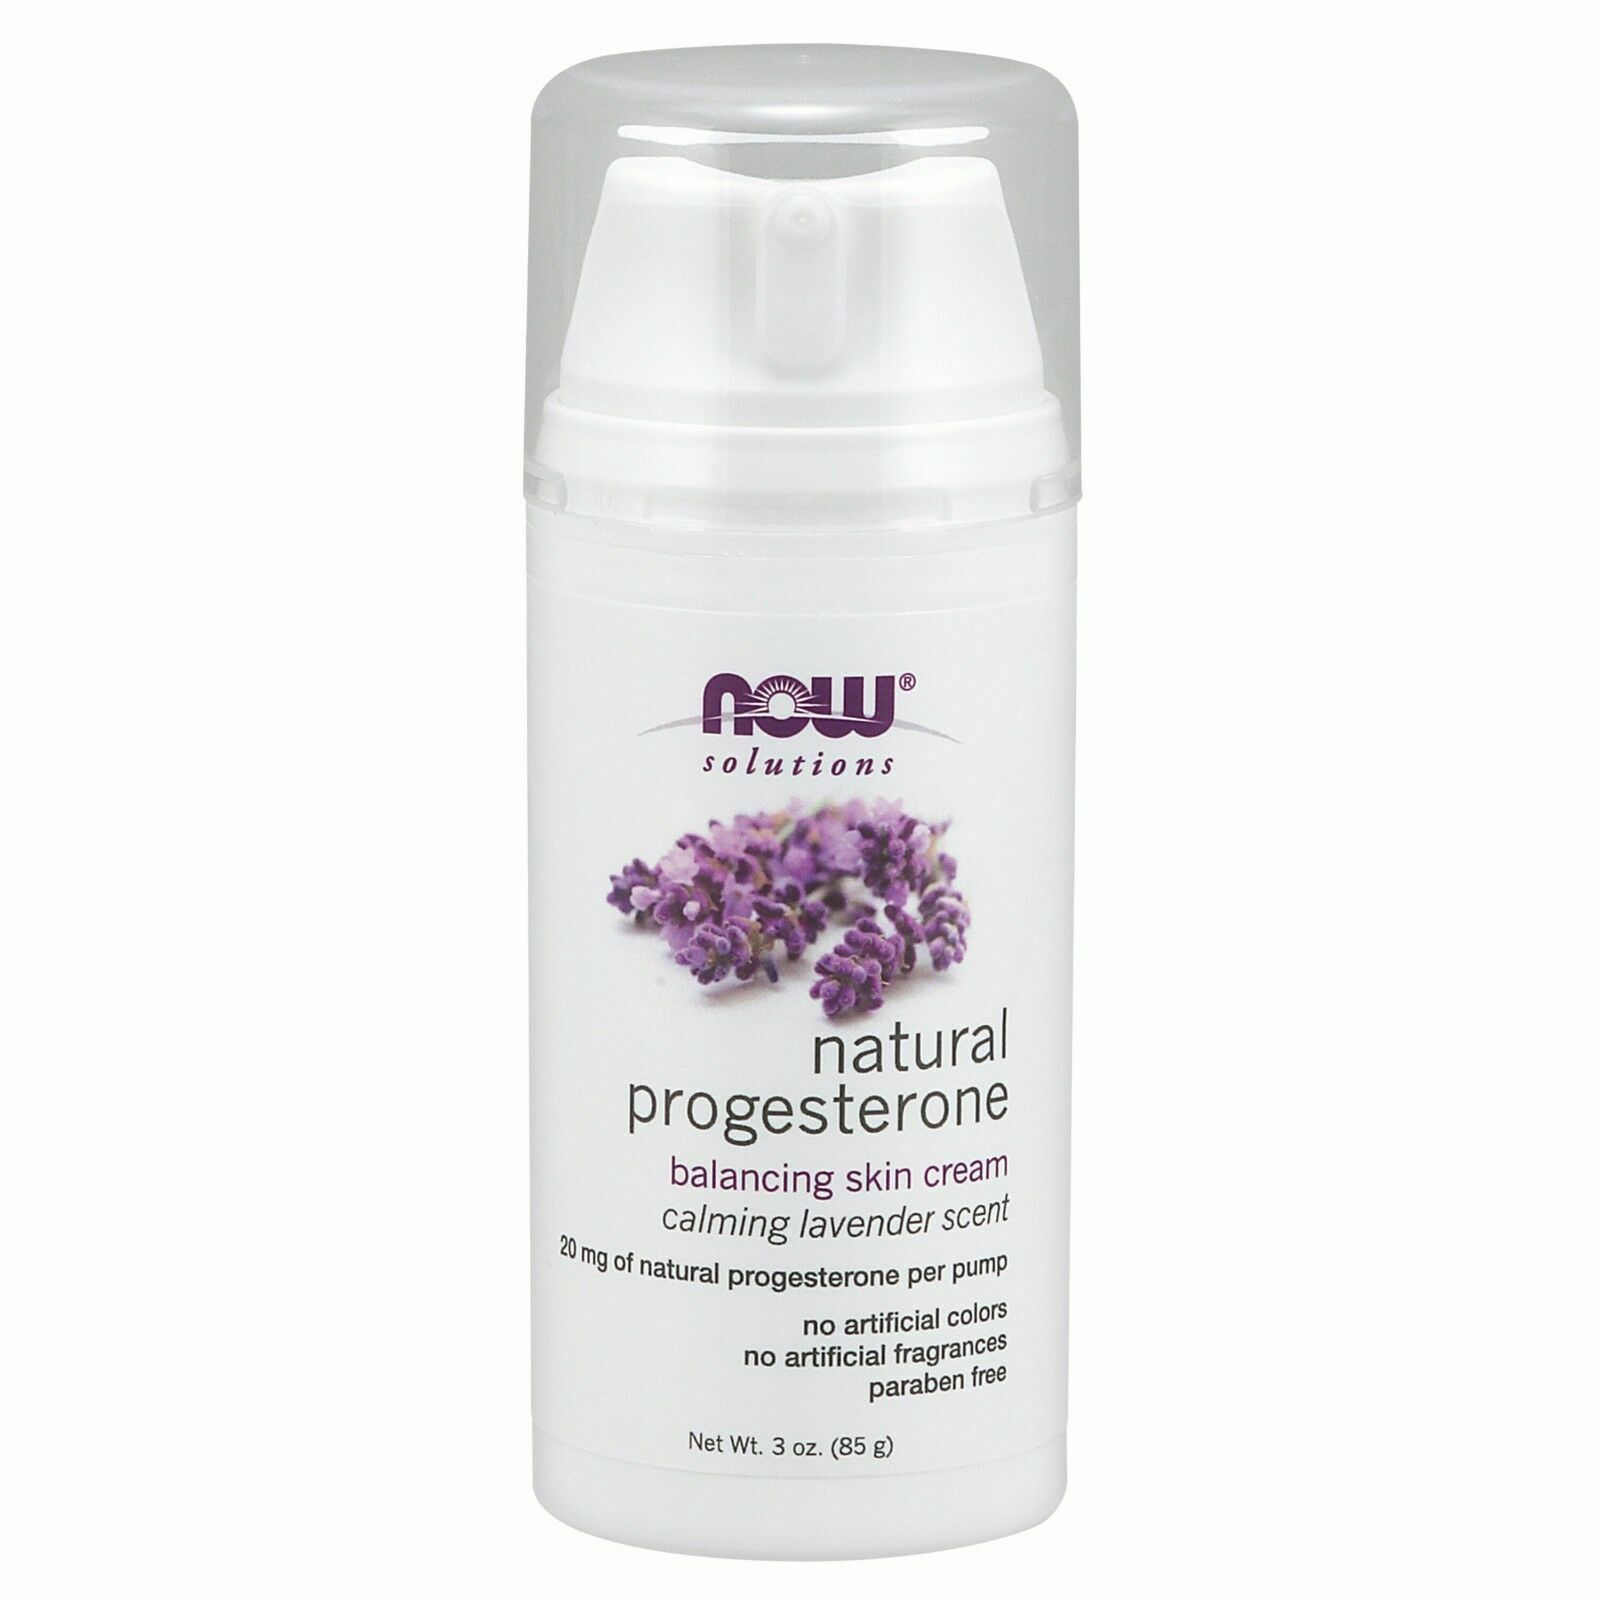 Now Foods Solutions Natural Progesterone Balancing Skin Crea